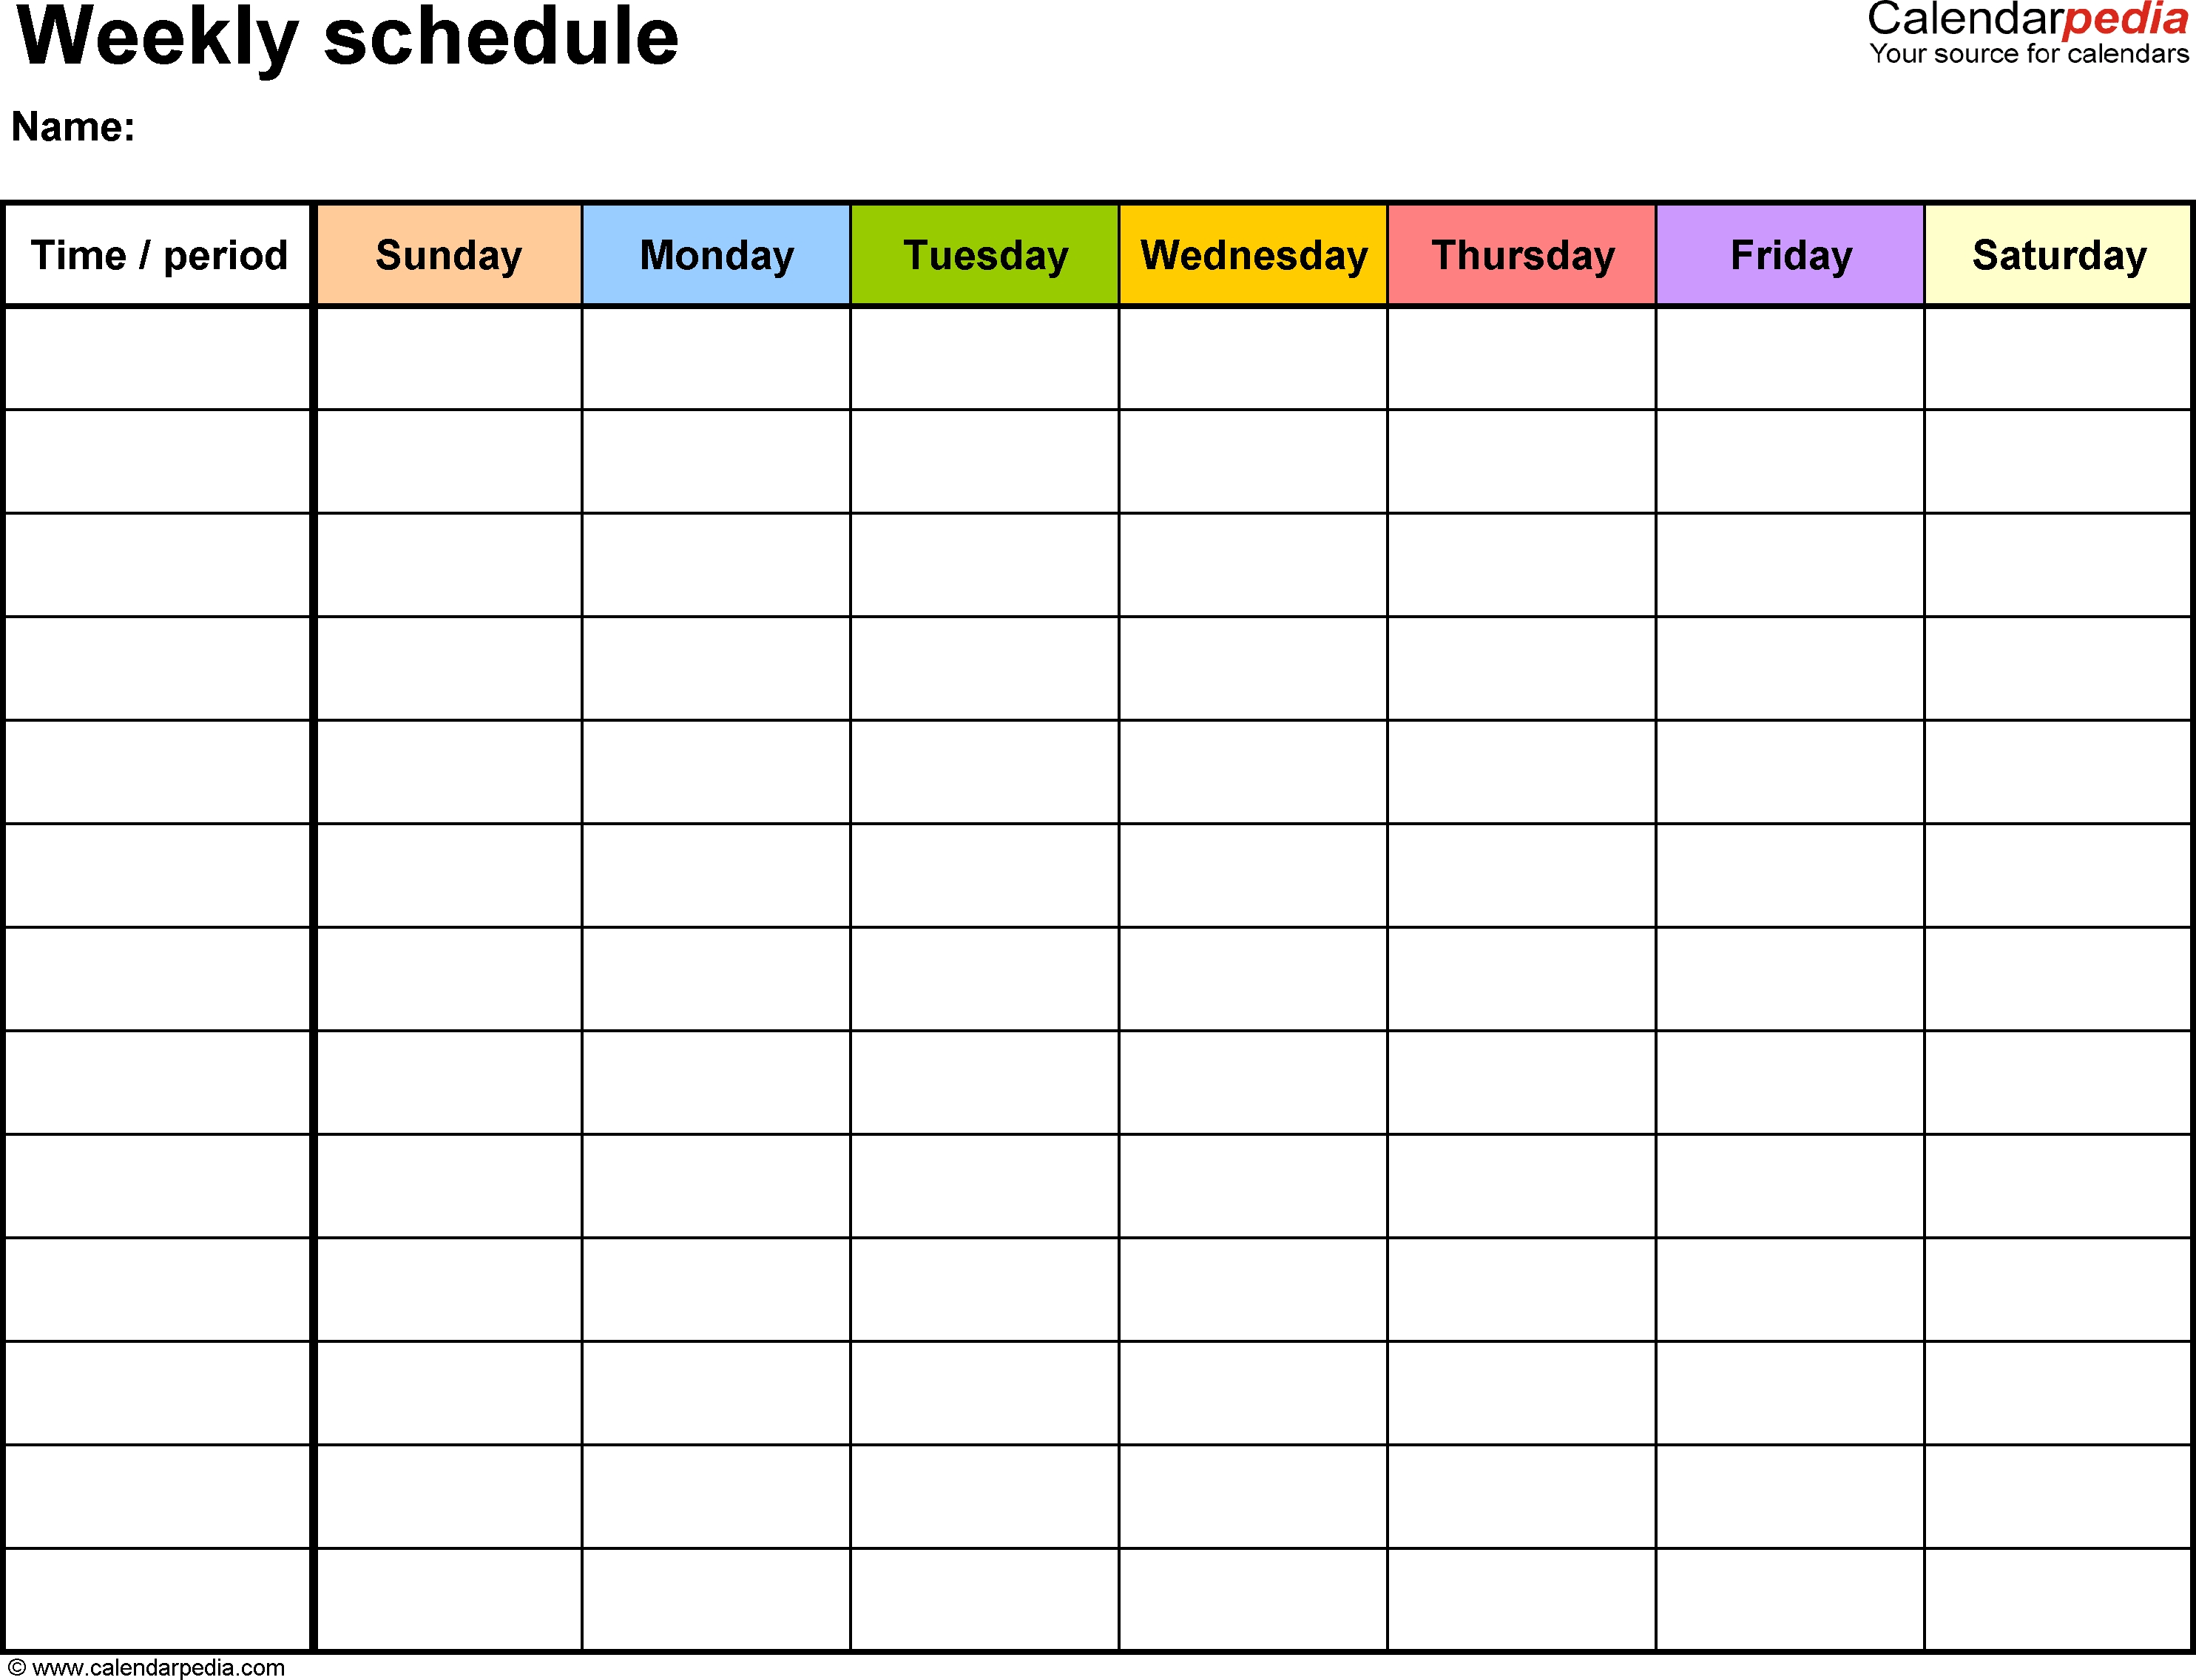 Free Weekly Schedule Templates For Excel - 18 Templates with regard to Blank Weekly Schedule With Times